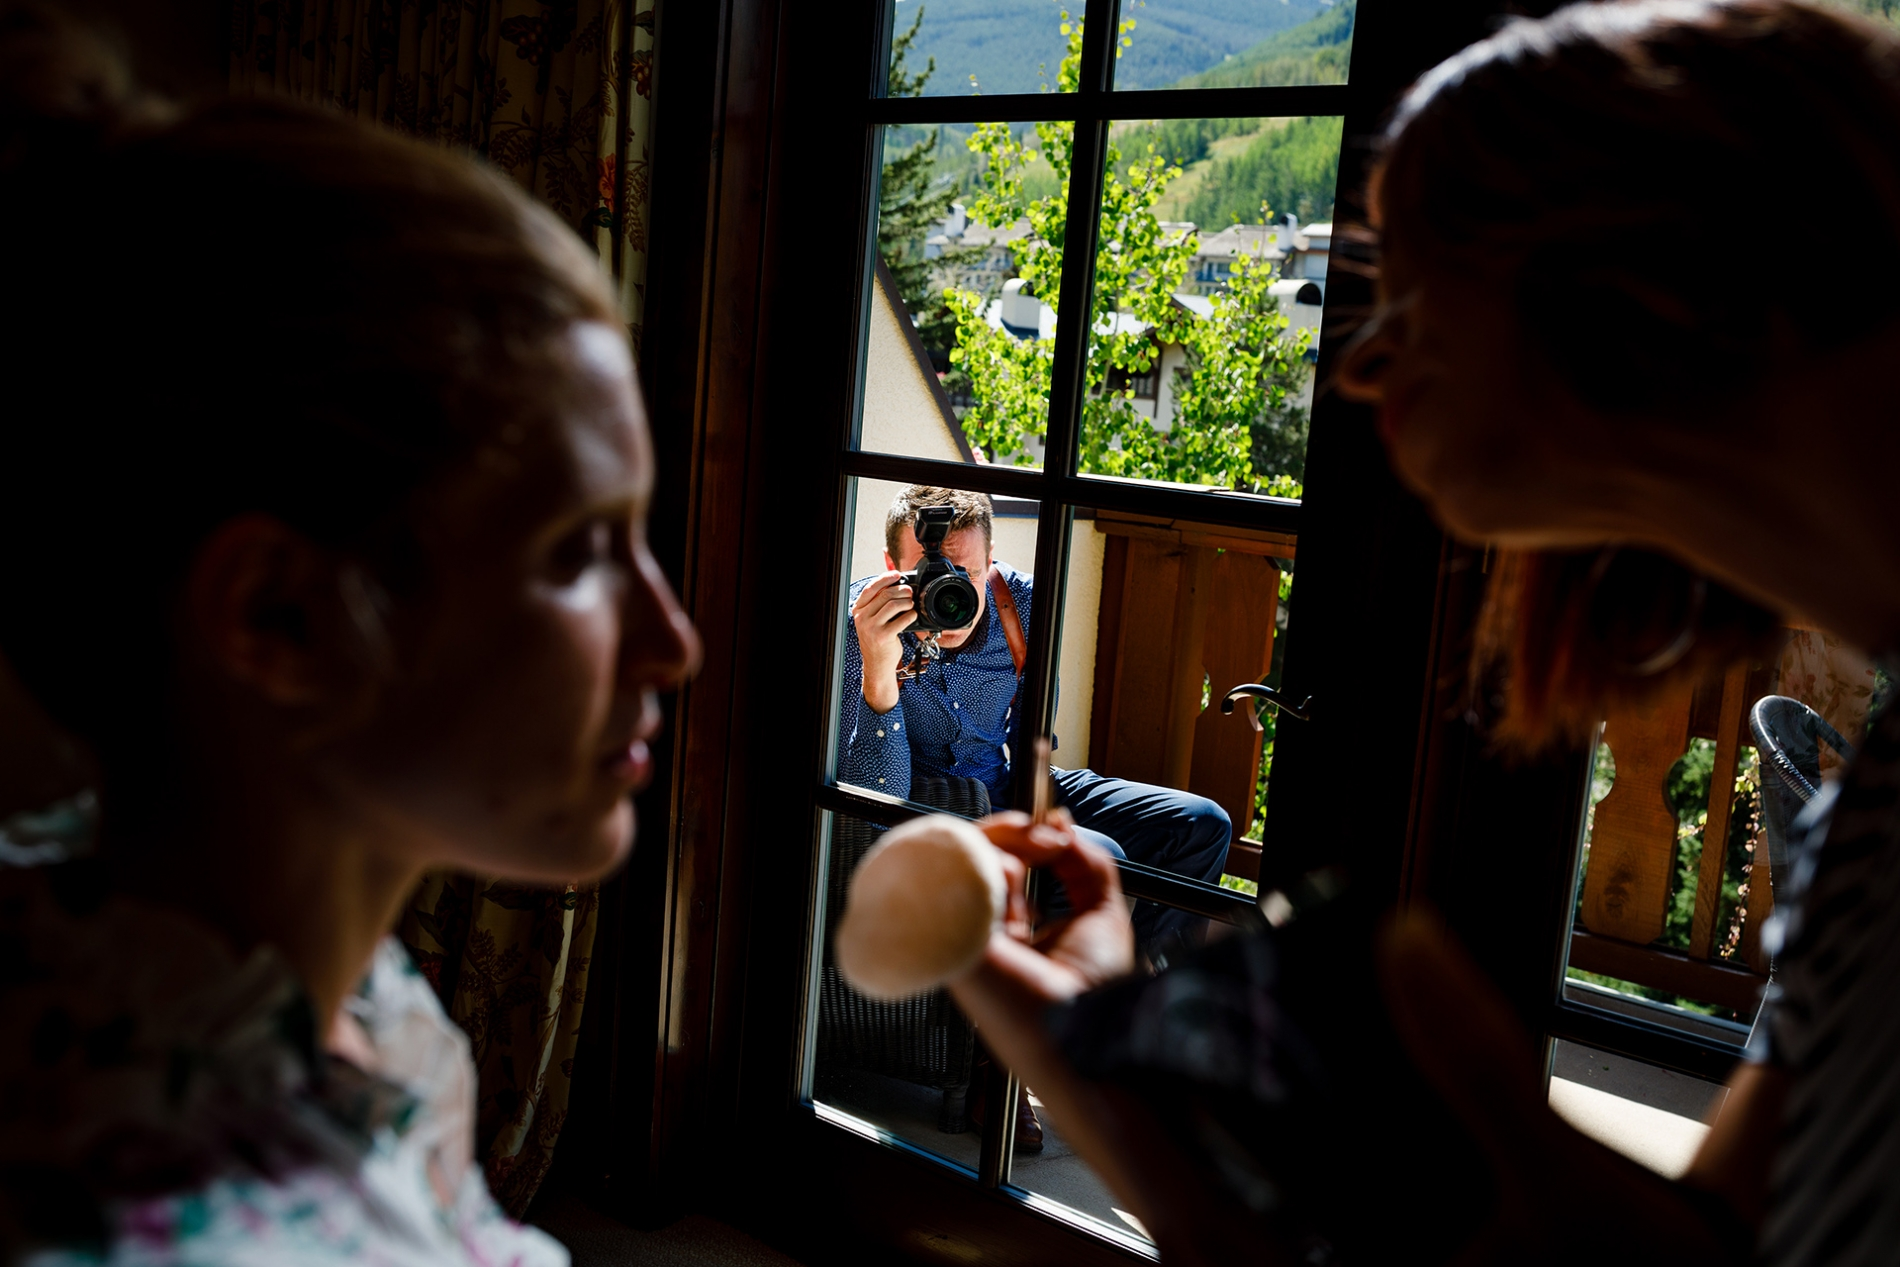 Silverthorne Colorado wedding photographer shooting pictures of the bride through a window.